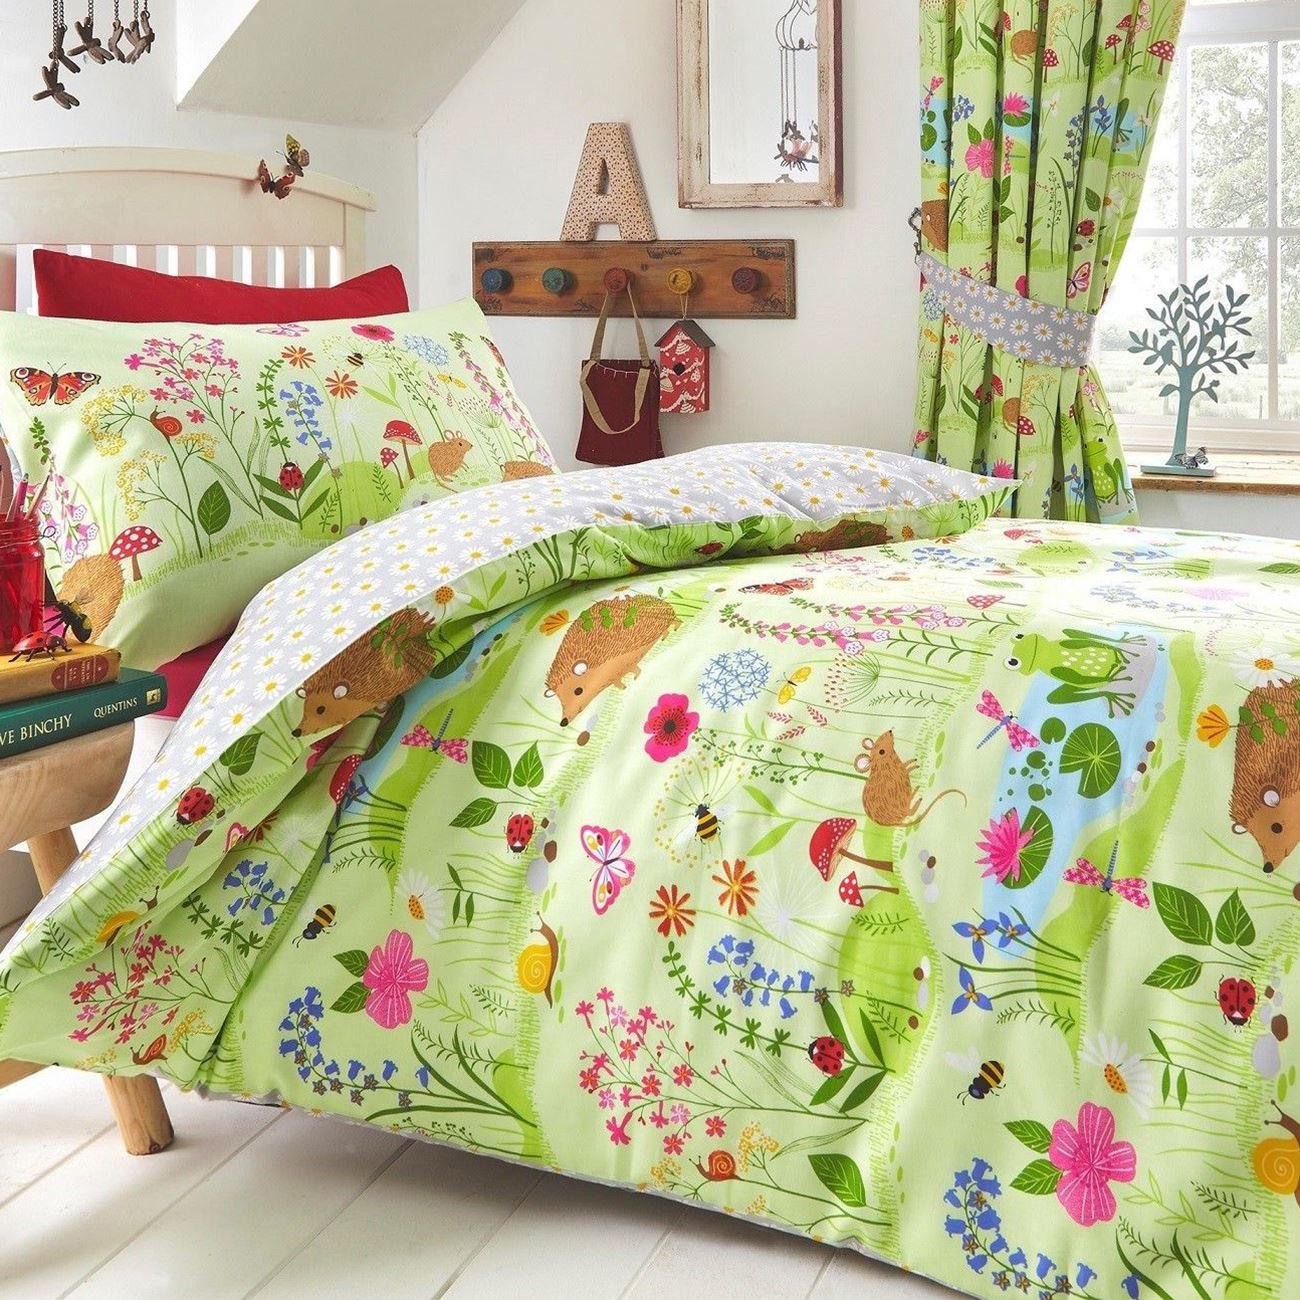 Animals Kids Club Bluebell Woods Single Duvet Cover Set by Animals (Image #1)